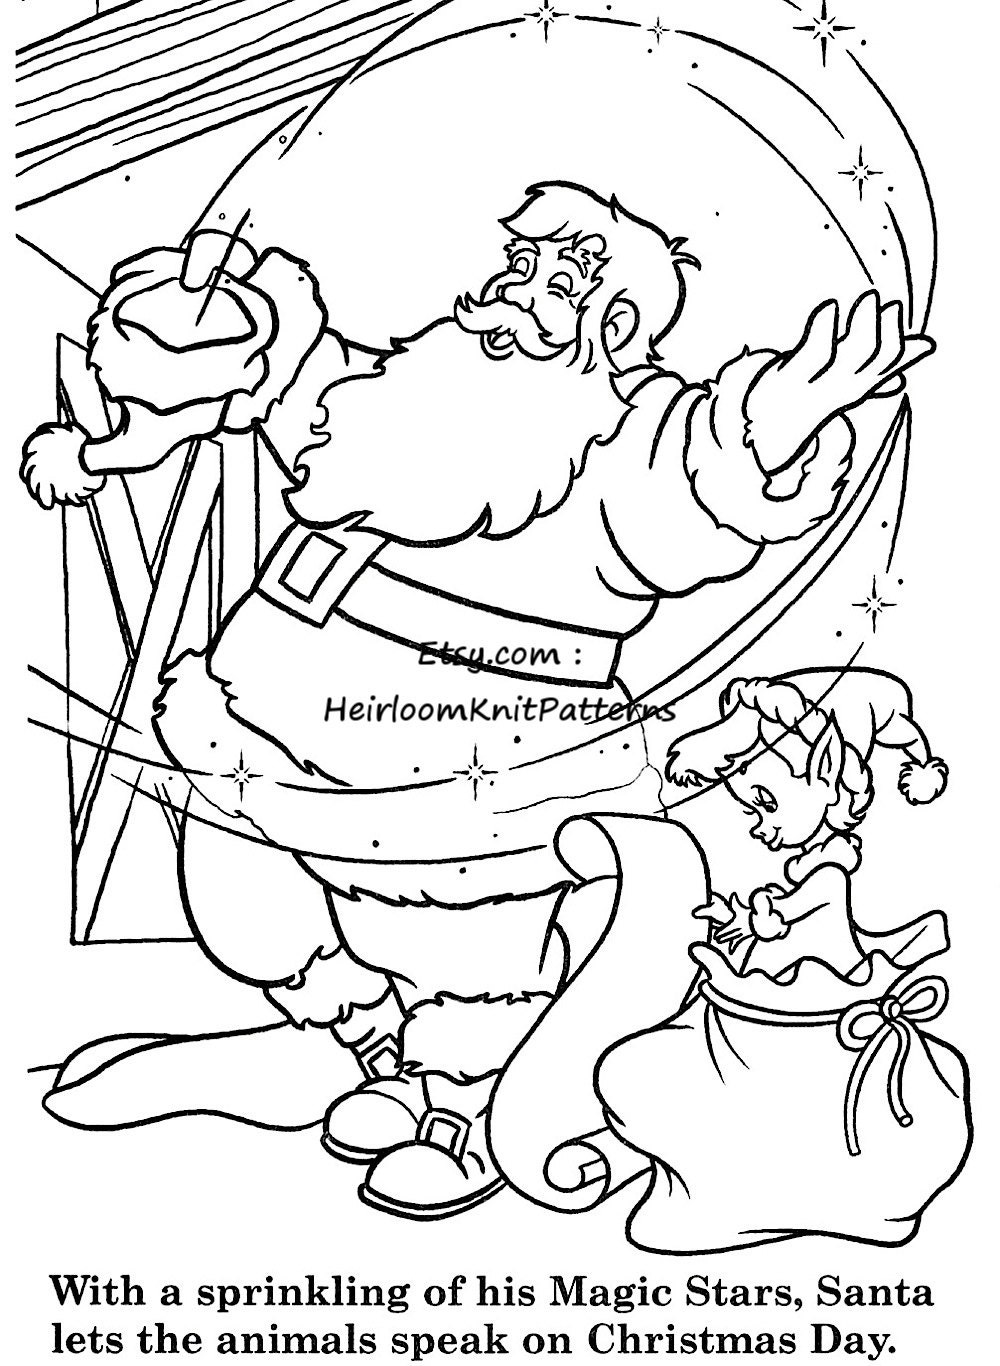 Coloring book christmas printable - This Is A Digital File